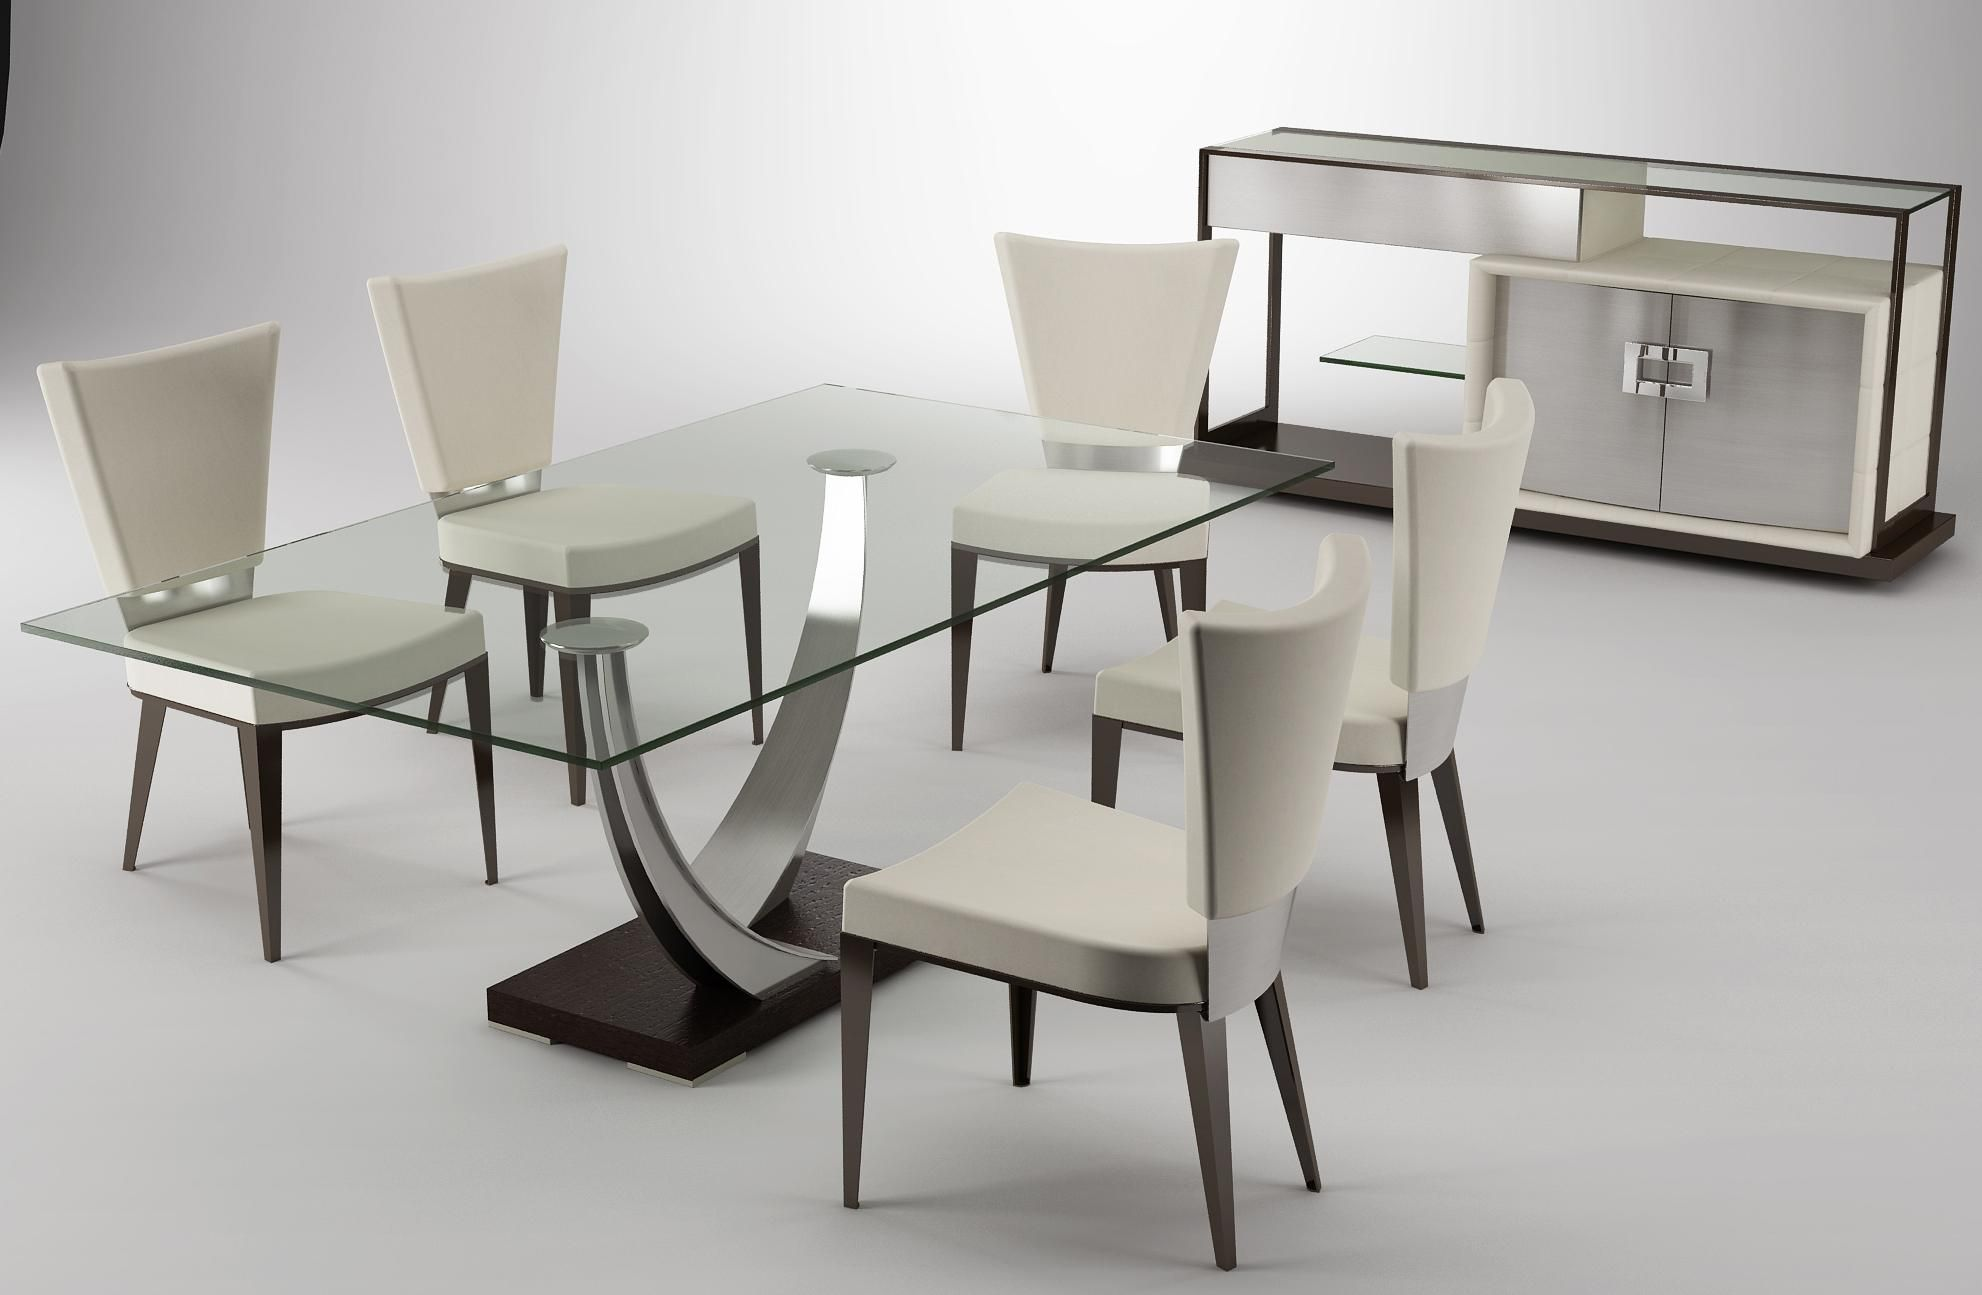 Modern Dining 6 Piece Table Modern Glass Dining Room Contemporary Glass Dining Table Contemporary Dining Room Tables